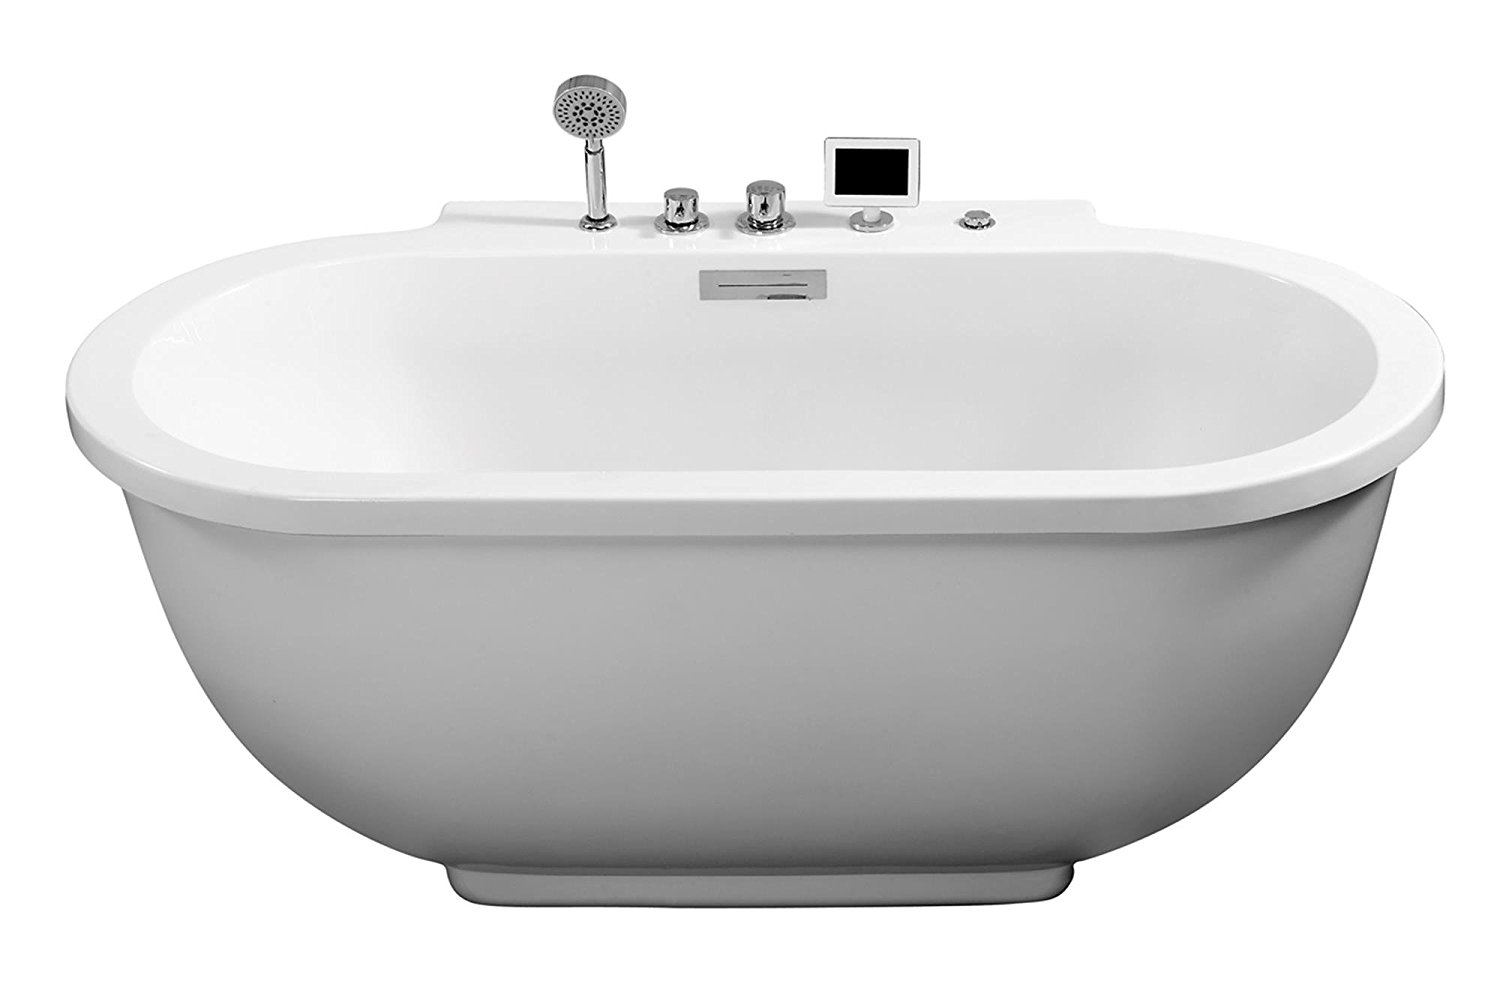 Ariel AM128JDCLZ Bath Whirlpool Tub, Rounded Front, White